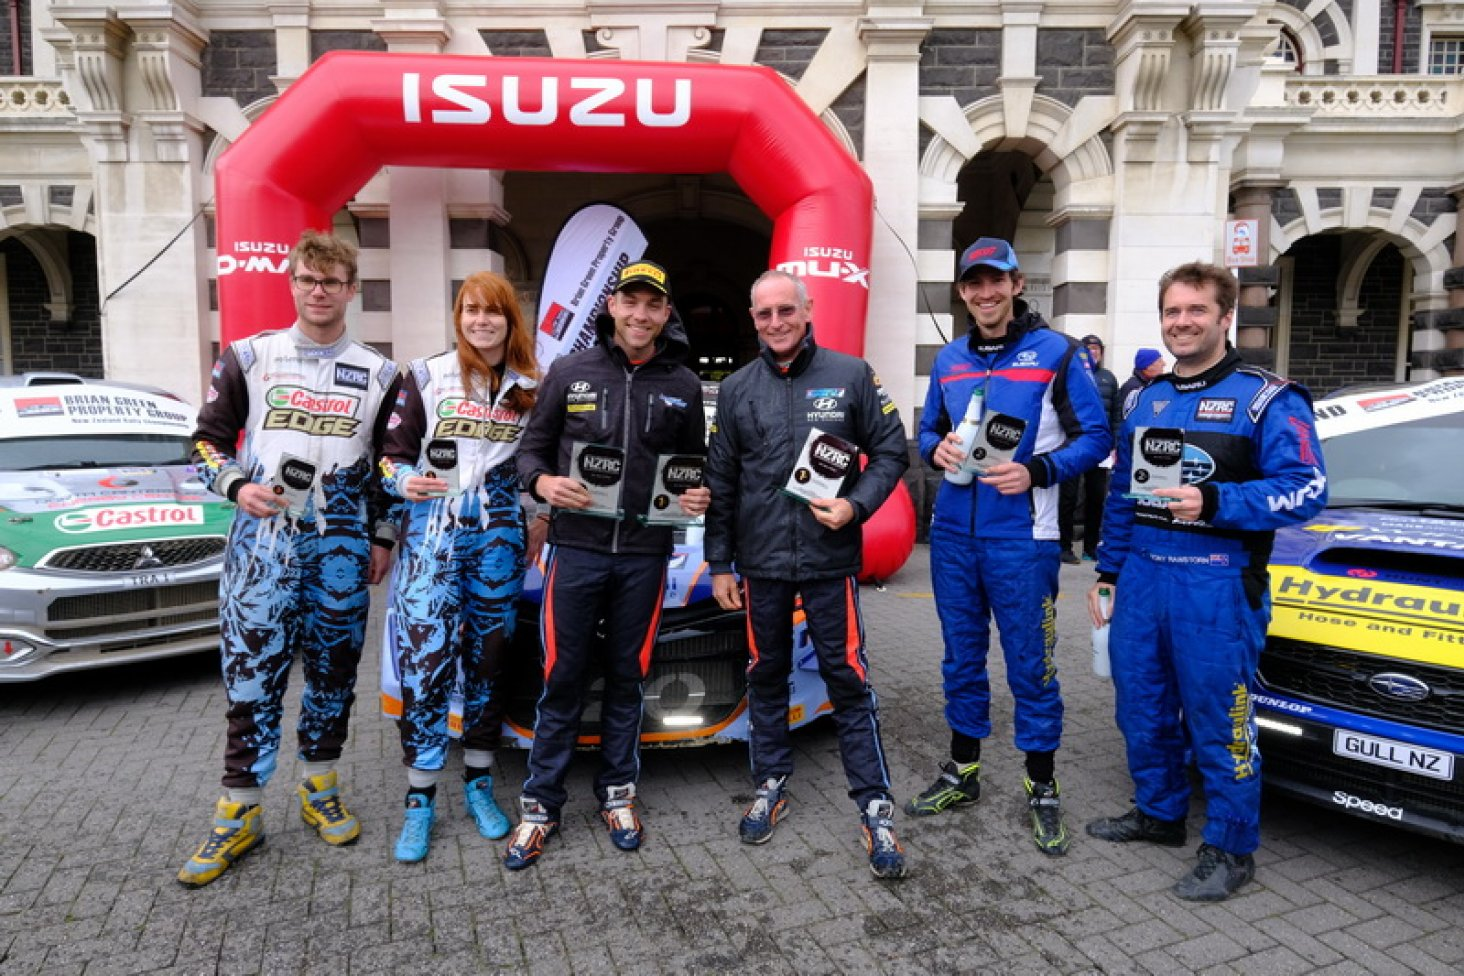 NZRC podium place-getters (from left) Matt and Nicole Summerfield in third; winners Hayden Paddon and John Kennard and runners-up Ben Hunt and Tony Rawstorn. PHOTO: GEOFF RIDDER